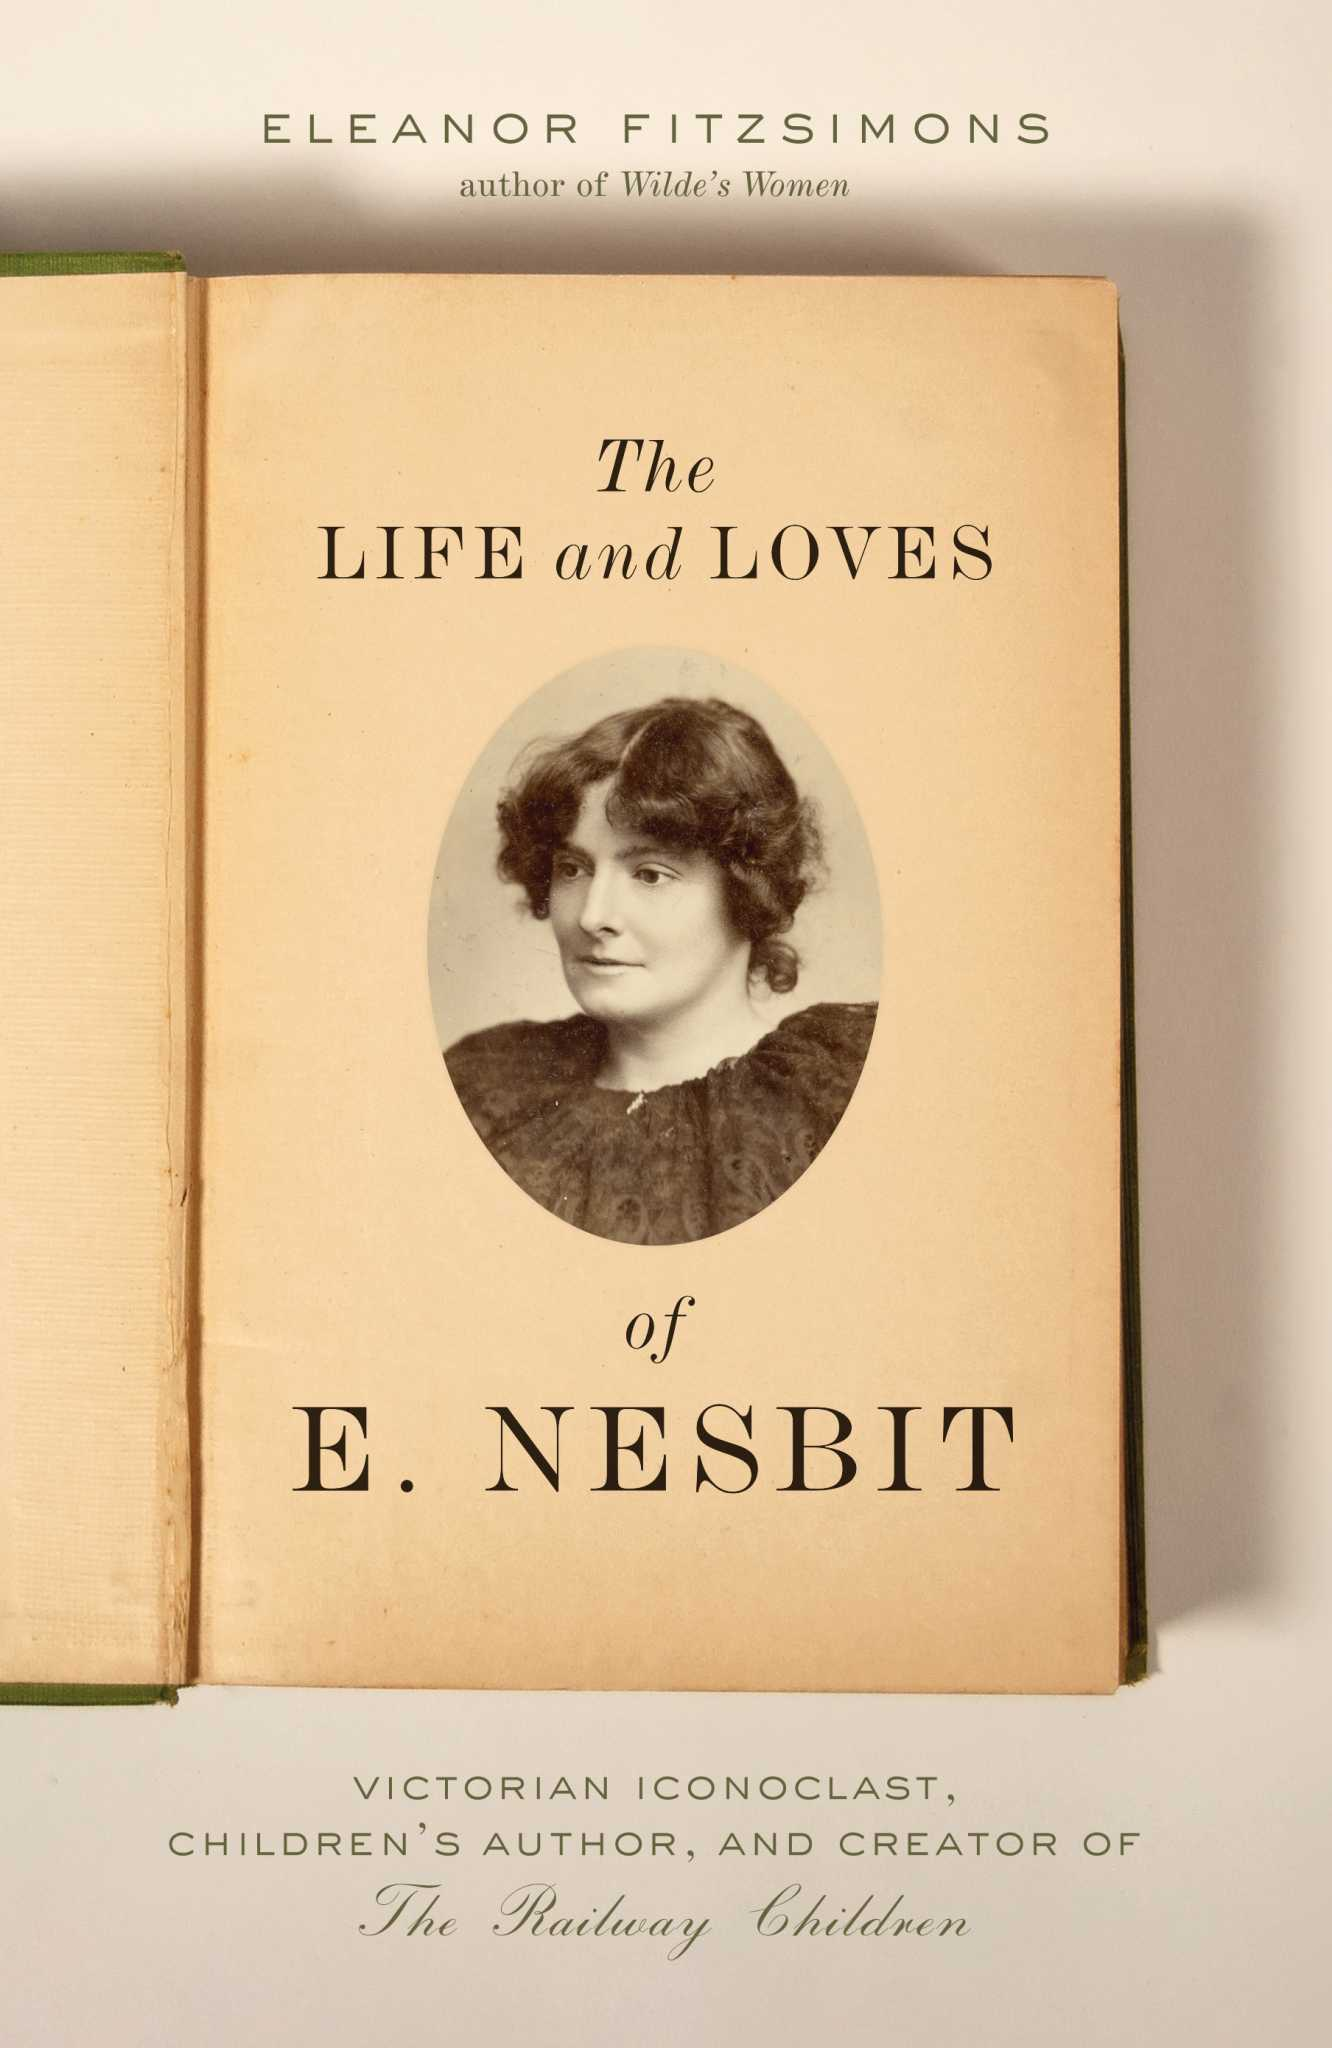 Book World: A favorite of J.K. Rowling, Edith Nesbit was a pioneer of children's books and so much more